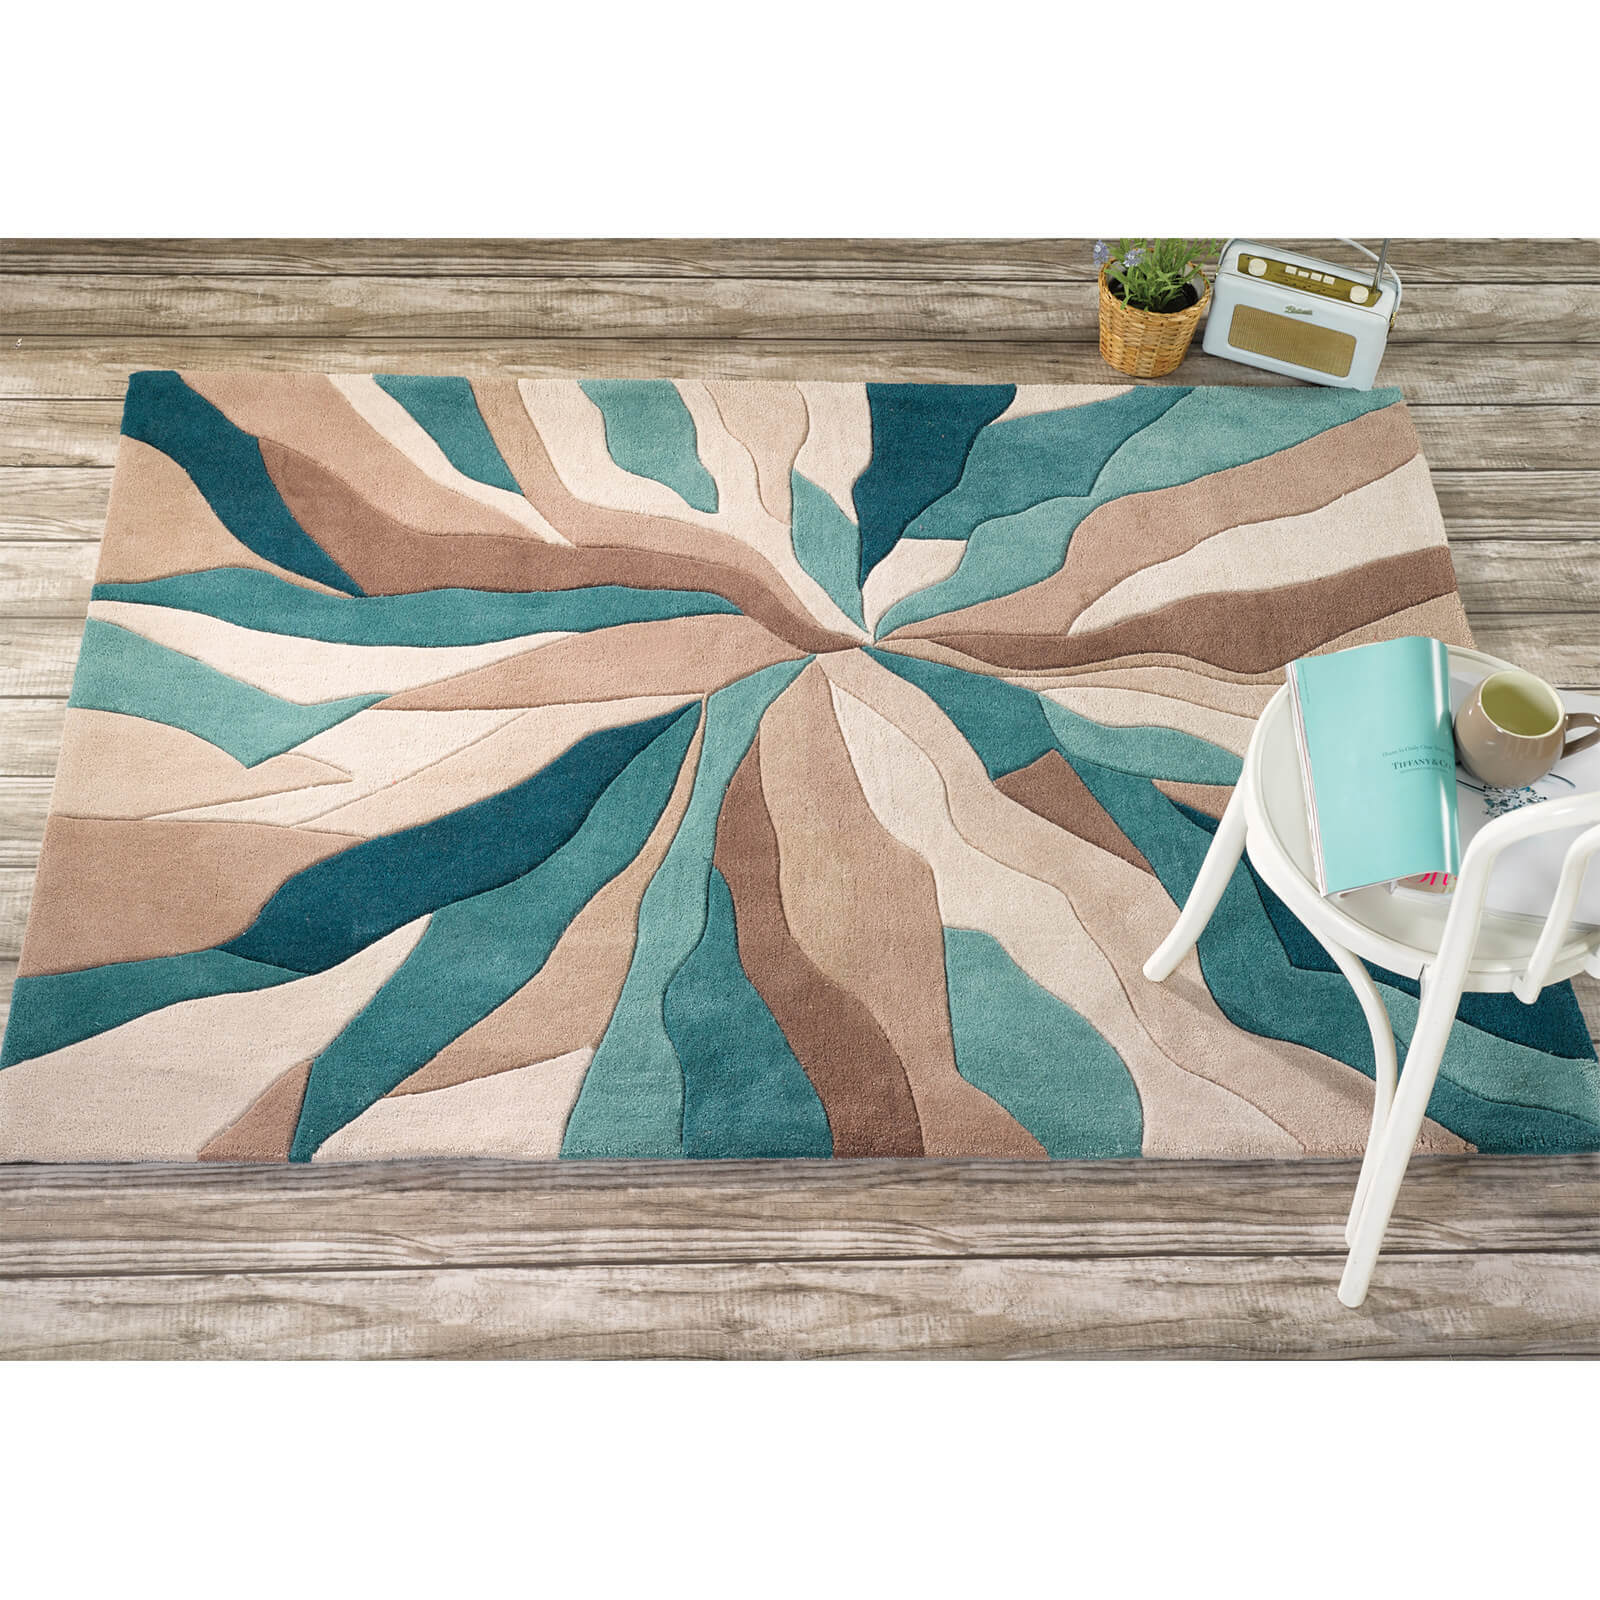 Flair Infinite Splinter Rug - Teal (200X290)